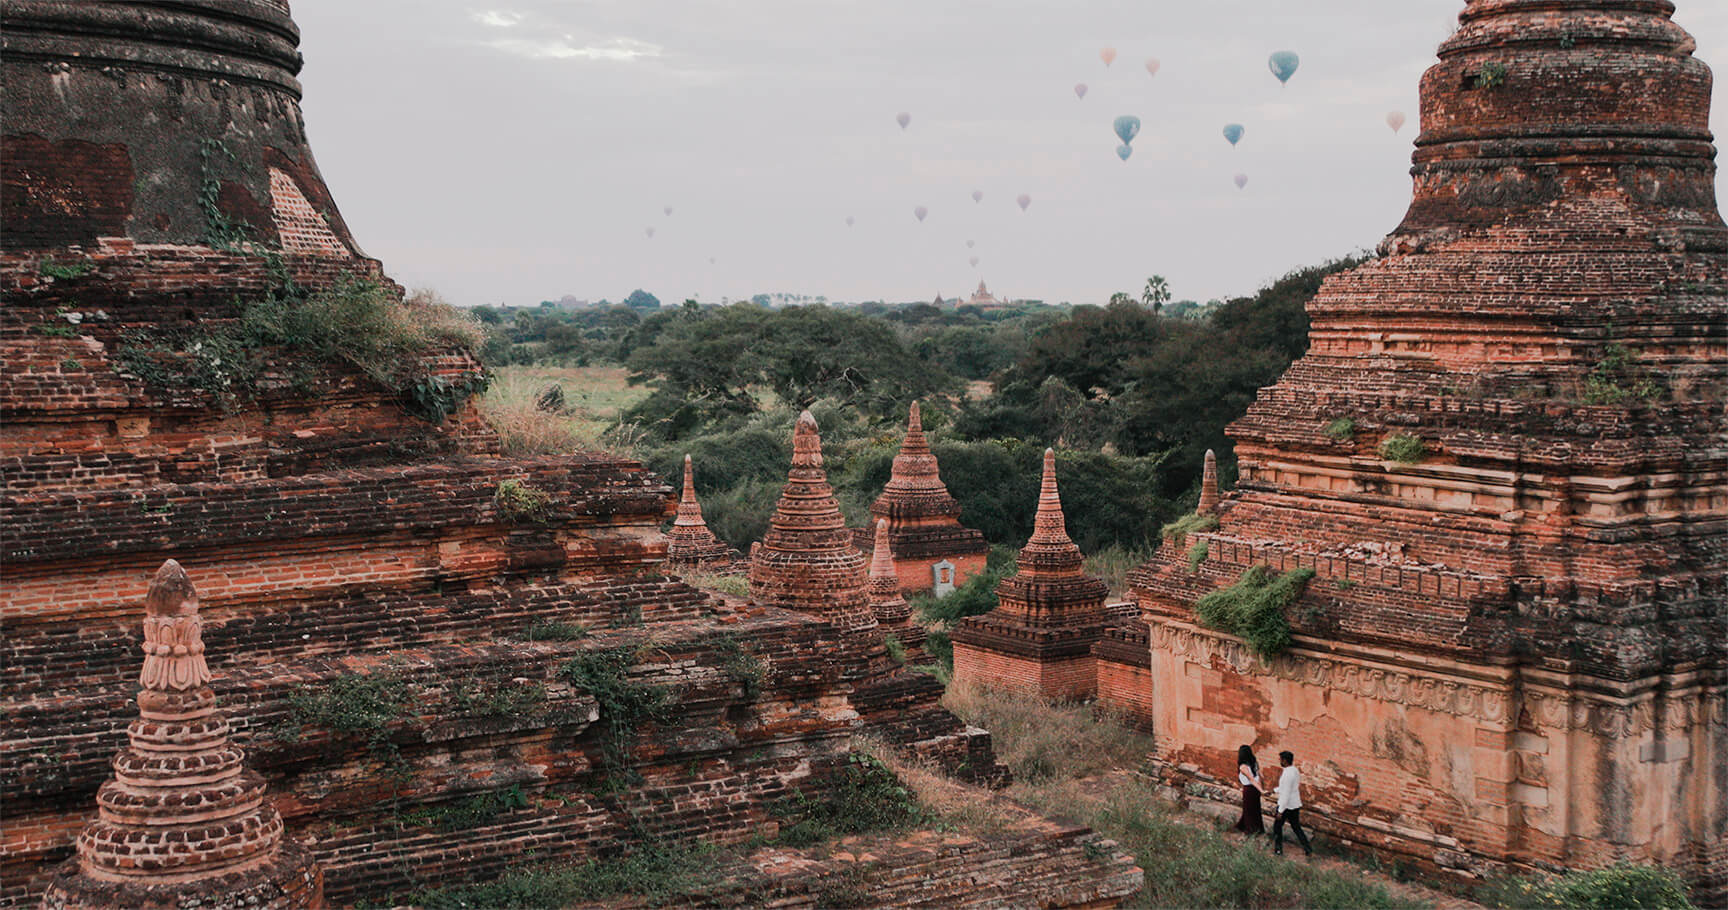 Wedding Couple in Bagan, Myanmar with Hot Air Balloons at Sunrise. Video by Sculpting With Time. Photos by Marko Marinkovic.